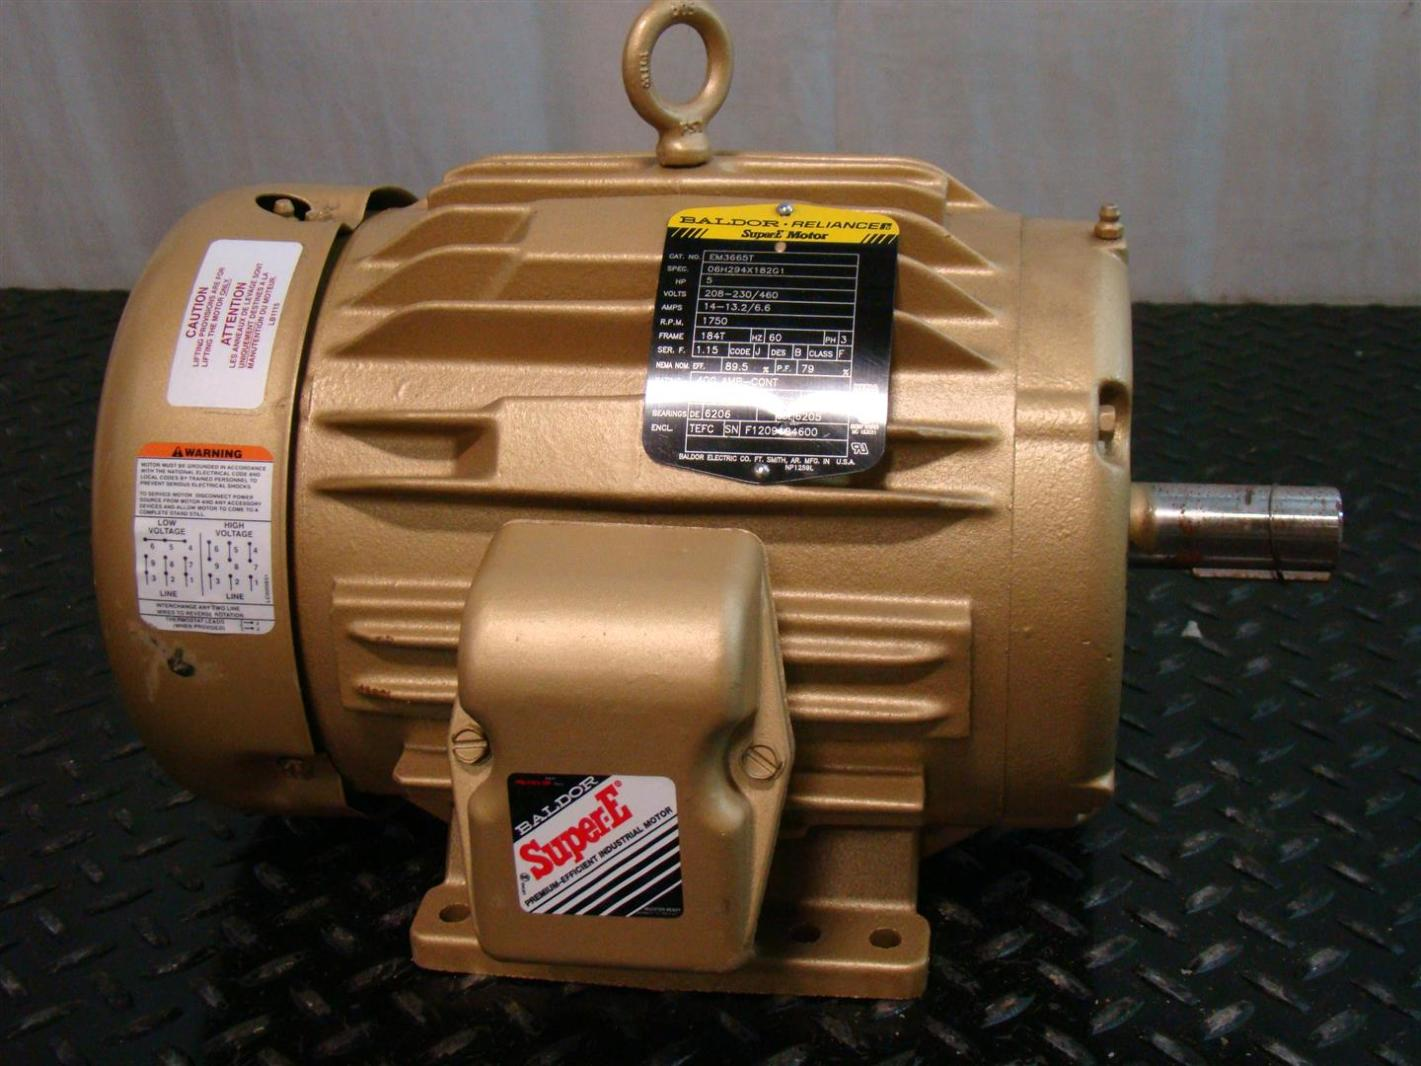 Baldor reliancer super e motor 5hp 230 460v 1750rpm 13 2 6 for Baldor industrial motor parts